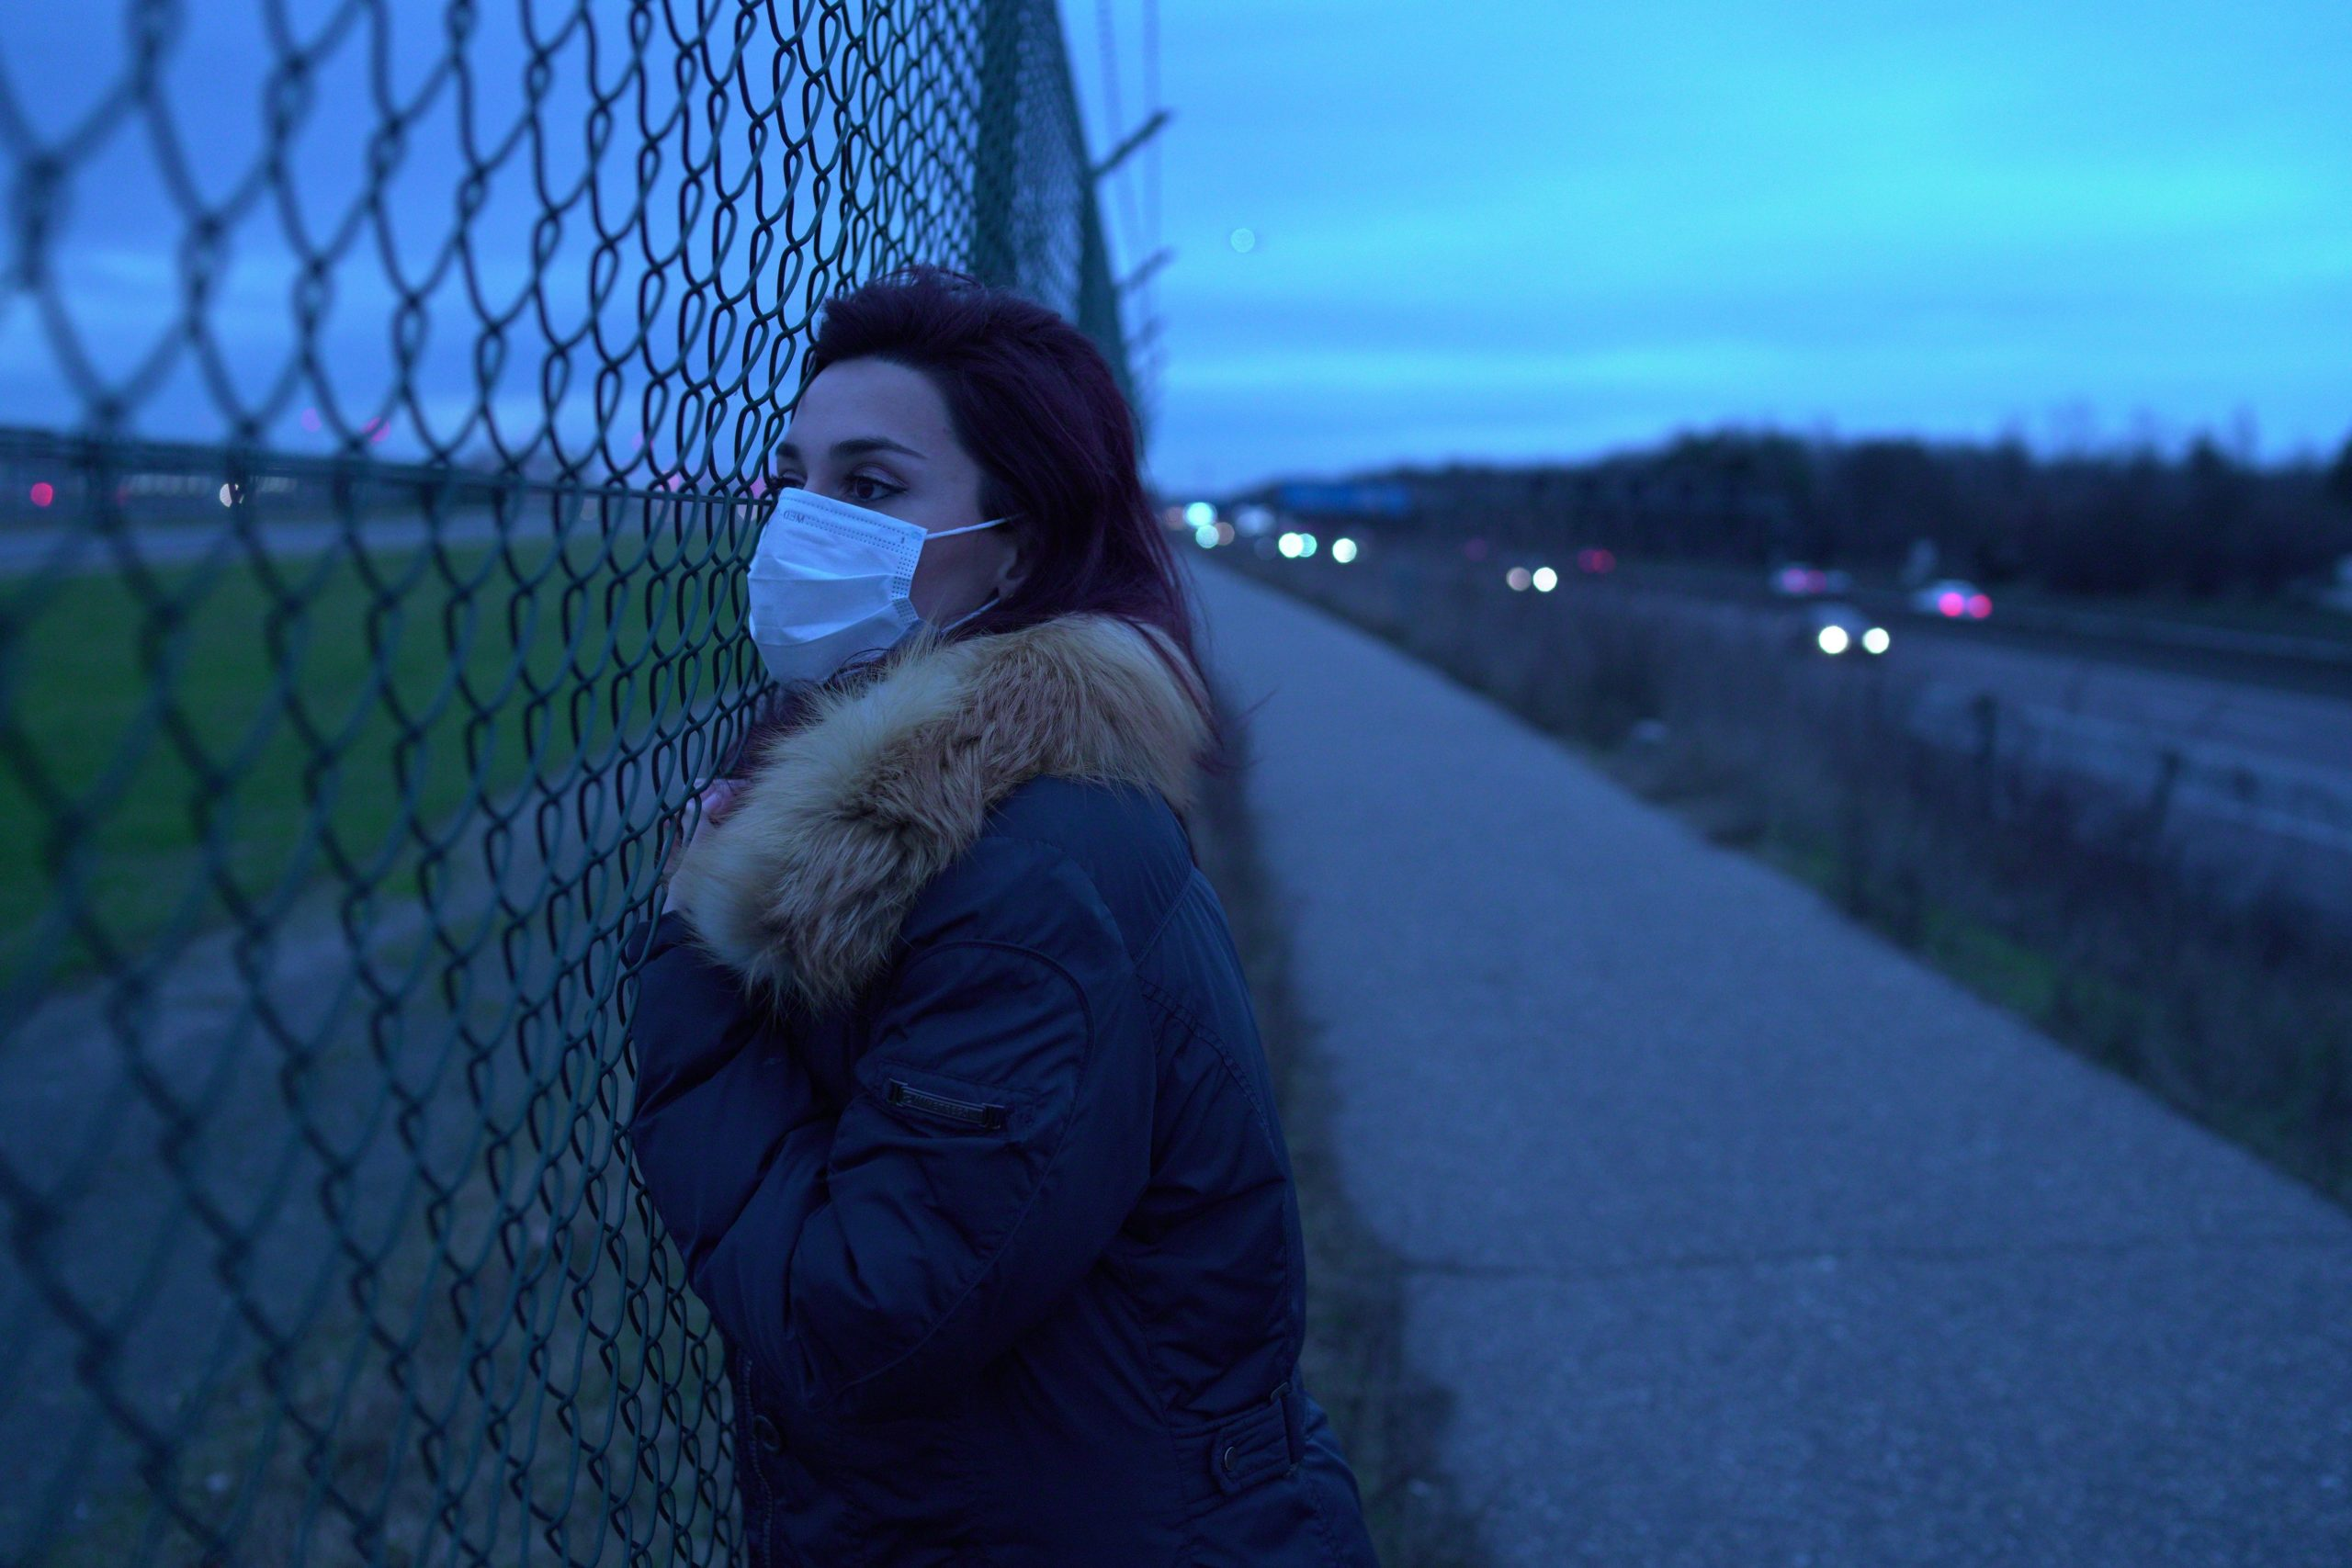 A light skinned woman wearing a medical mask leaning up against a wire fence, looking urgently into the distance, in the dim lighting of sun down.